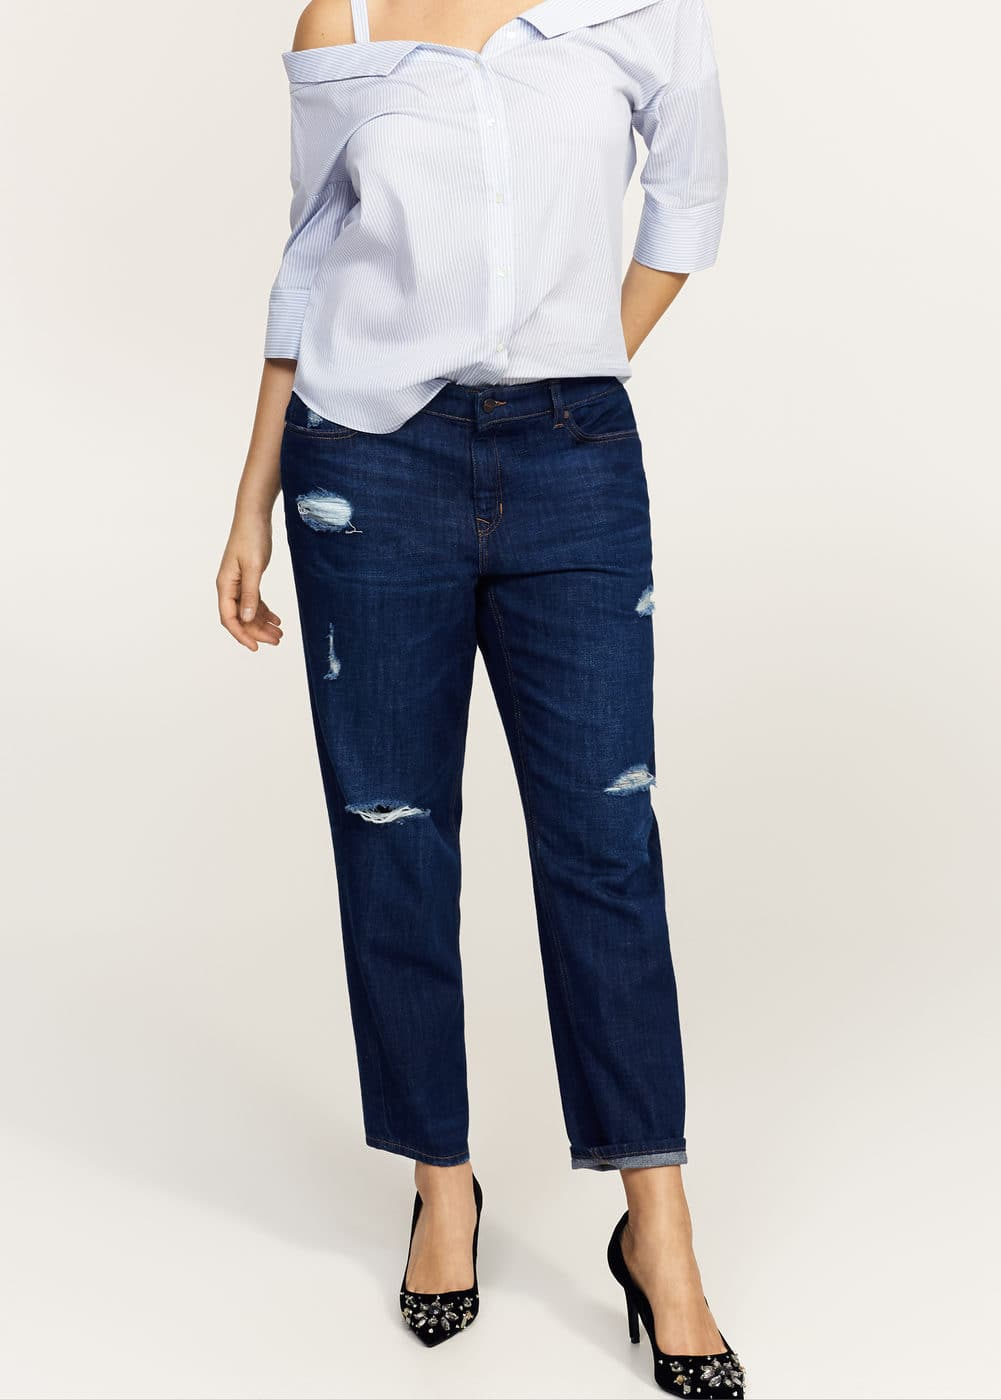 Girlfriend jeans claudia | VIOLETA BY MANGO